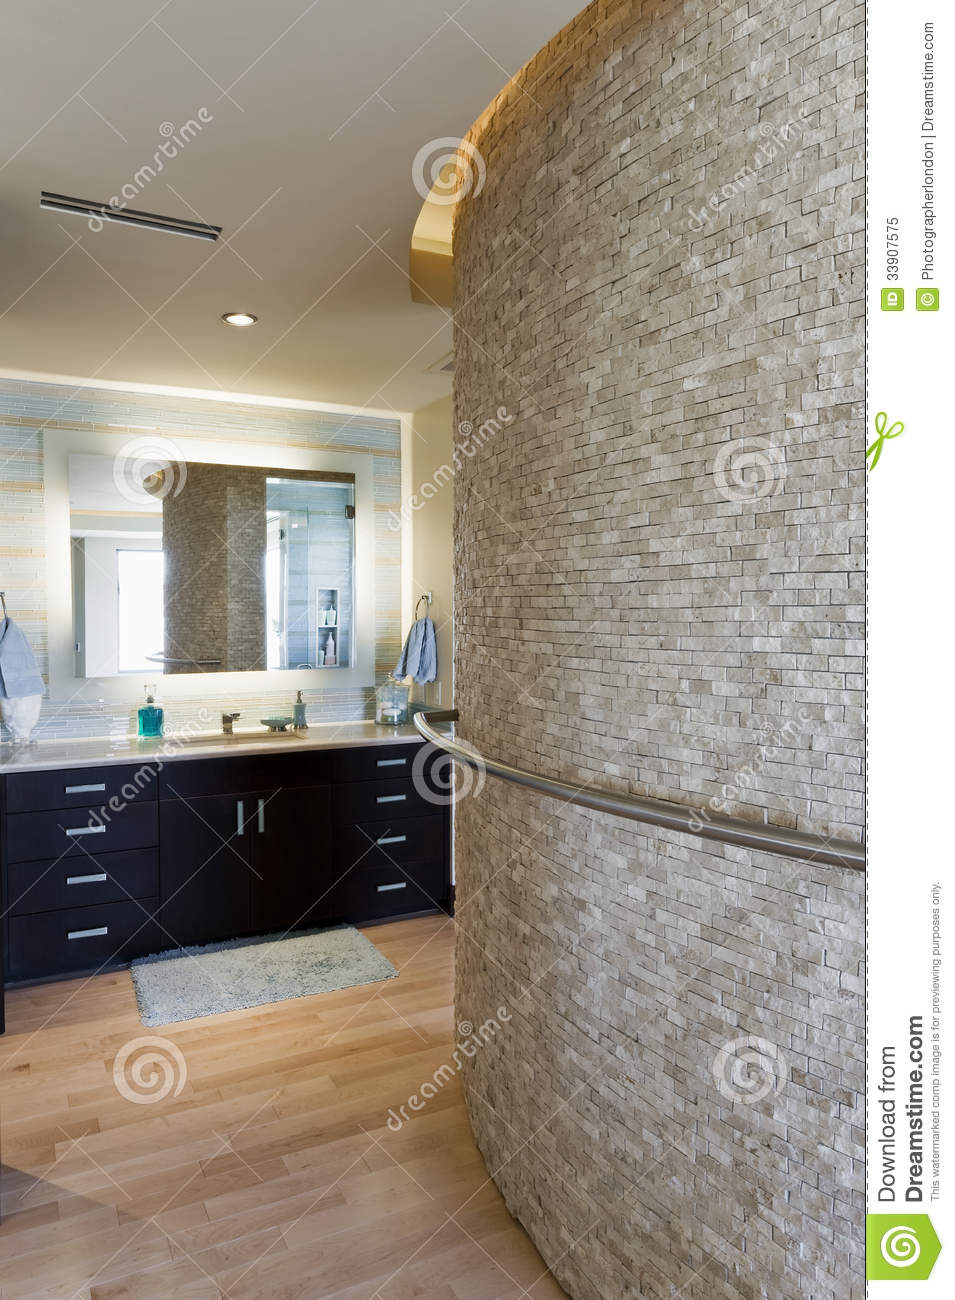 bathroom with curved stone wall and cabinets royalty free